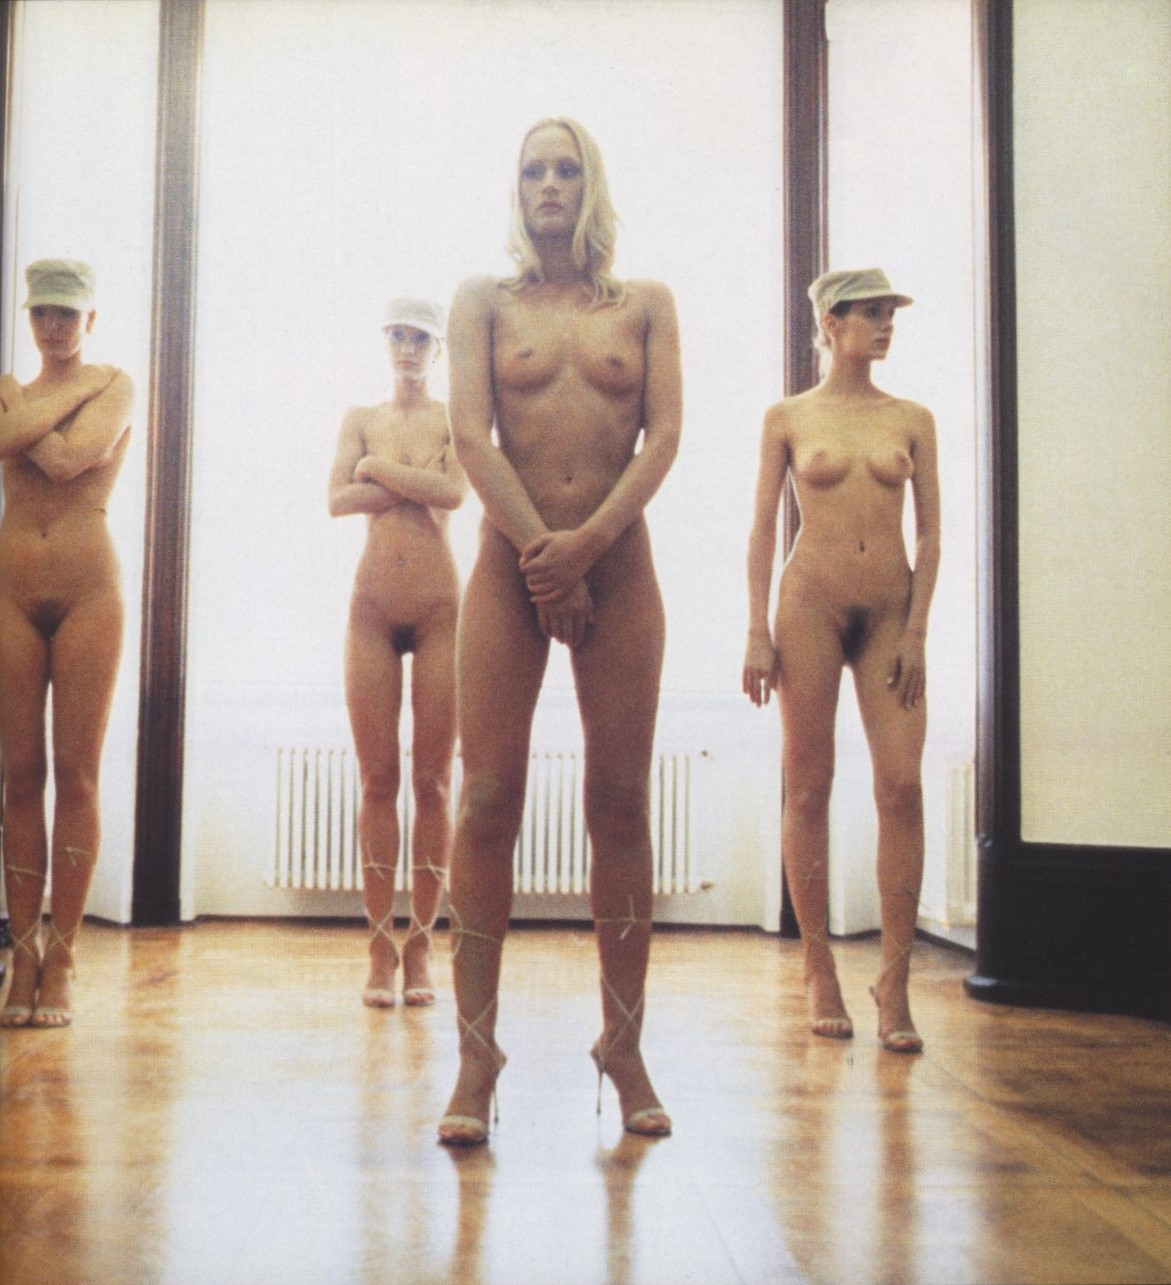 VANESSA BEECROFT | PERFORMANCE | 1998 | PHOTOGRAPHY ANNIKA LARSSON | FLASH ART N° 213 | DECEMBER 1998/JANUARY 1999